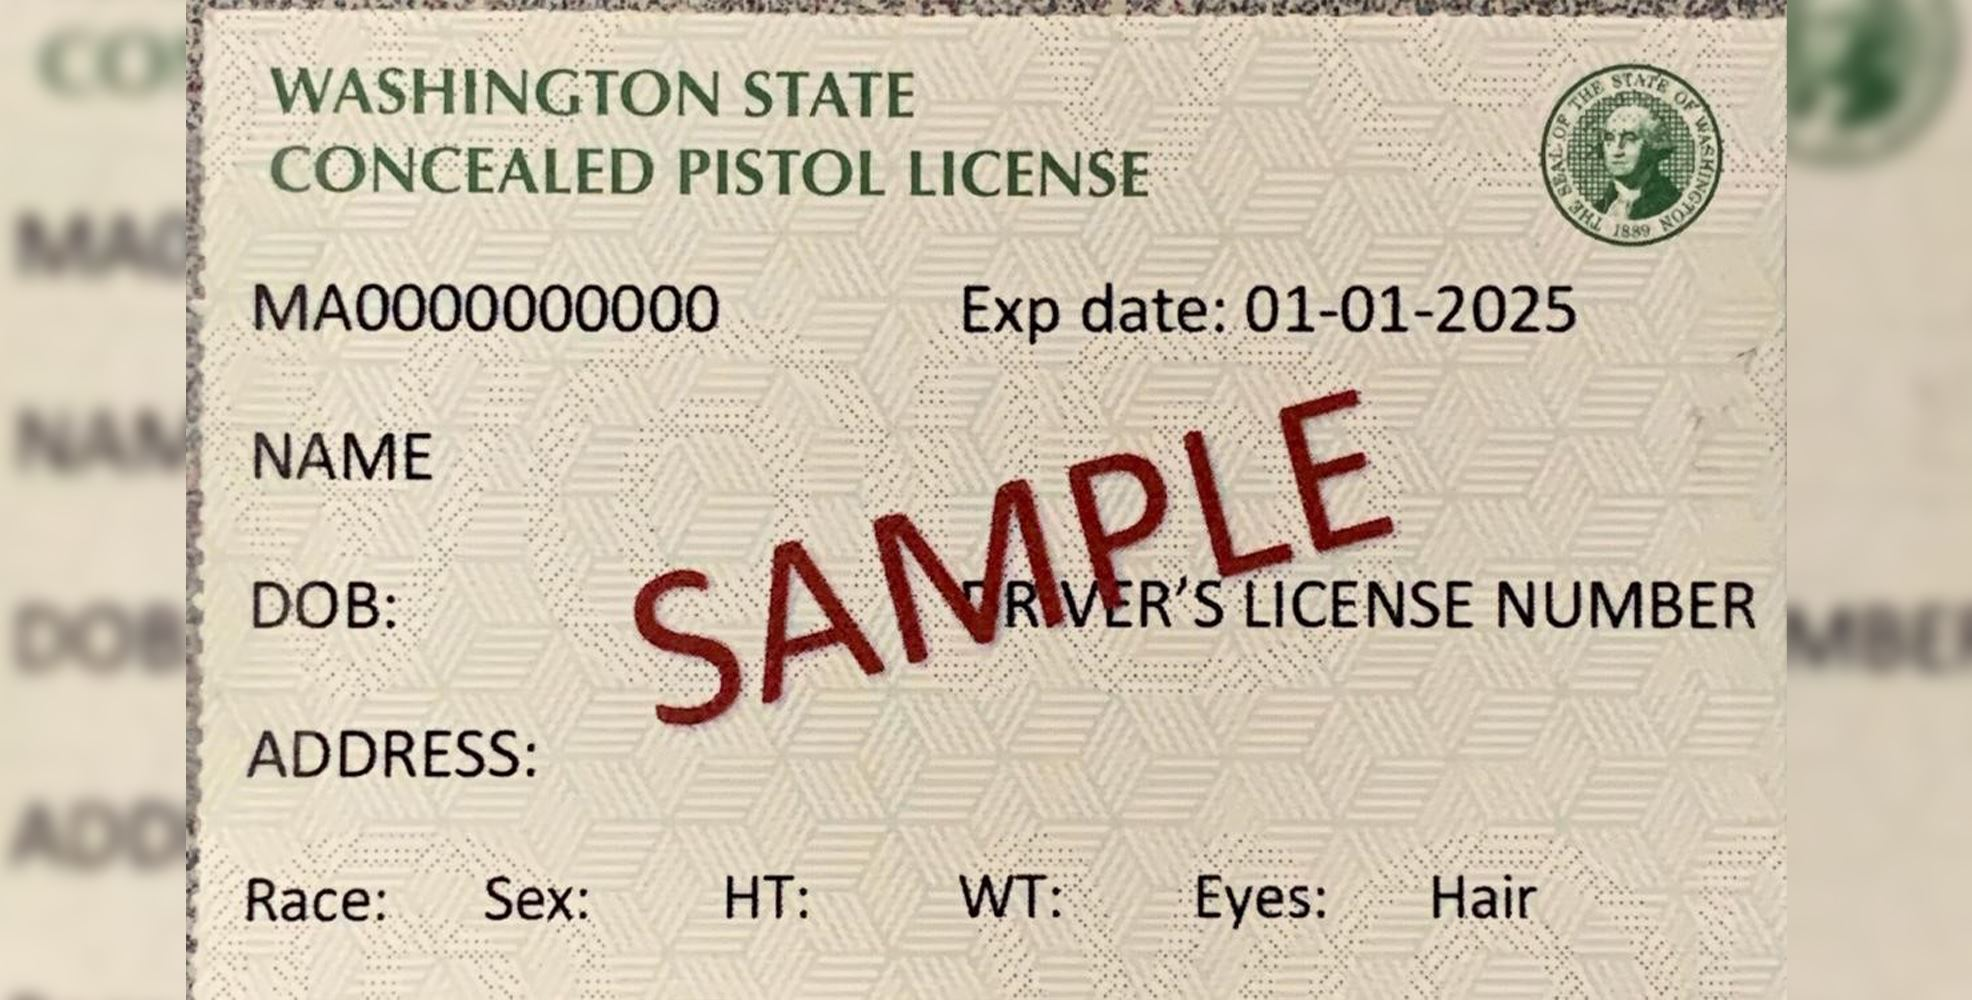 A sample concealed pistol license